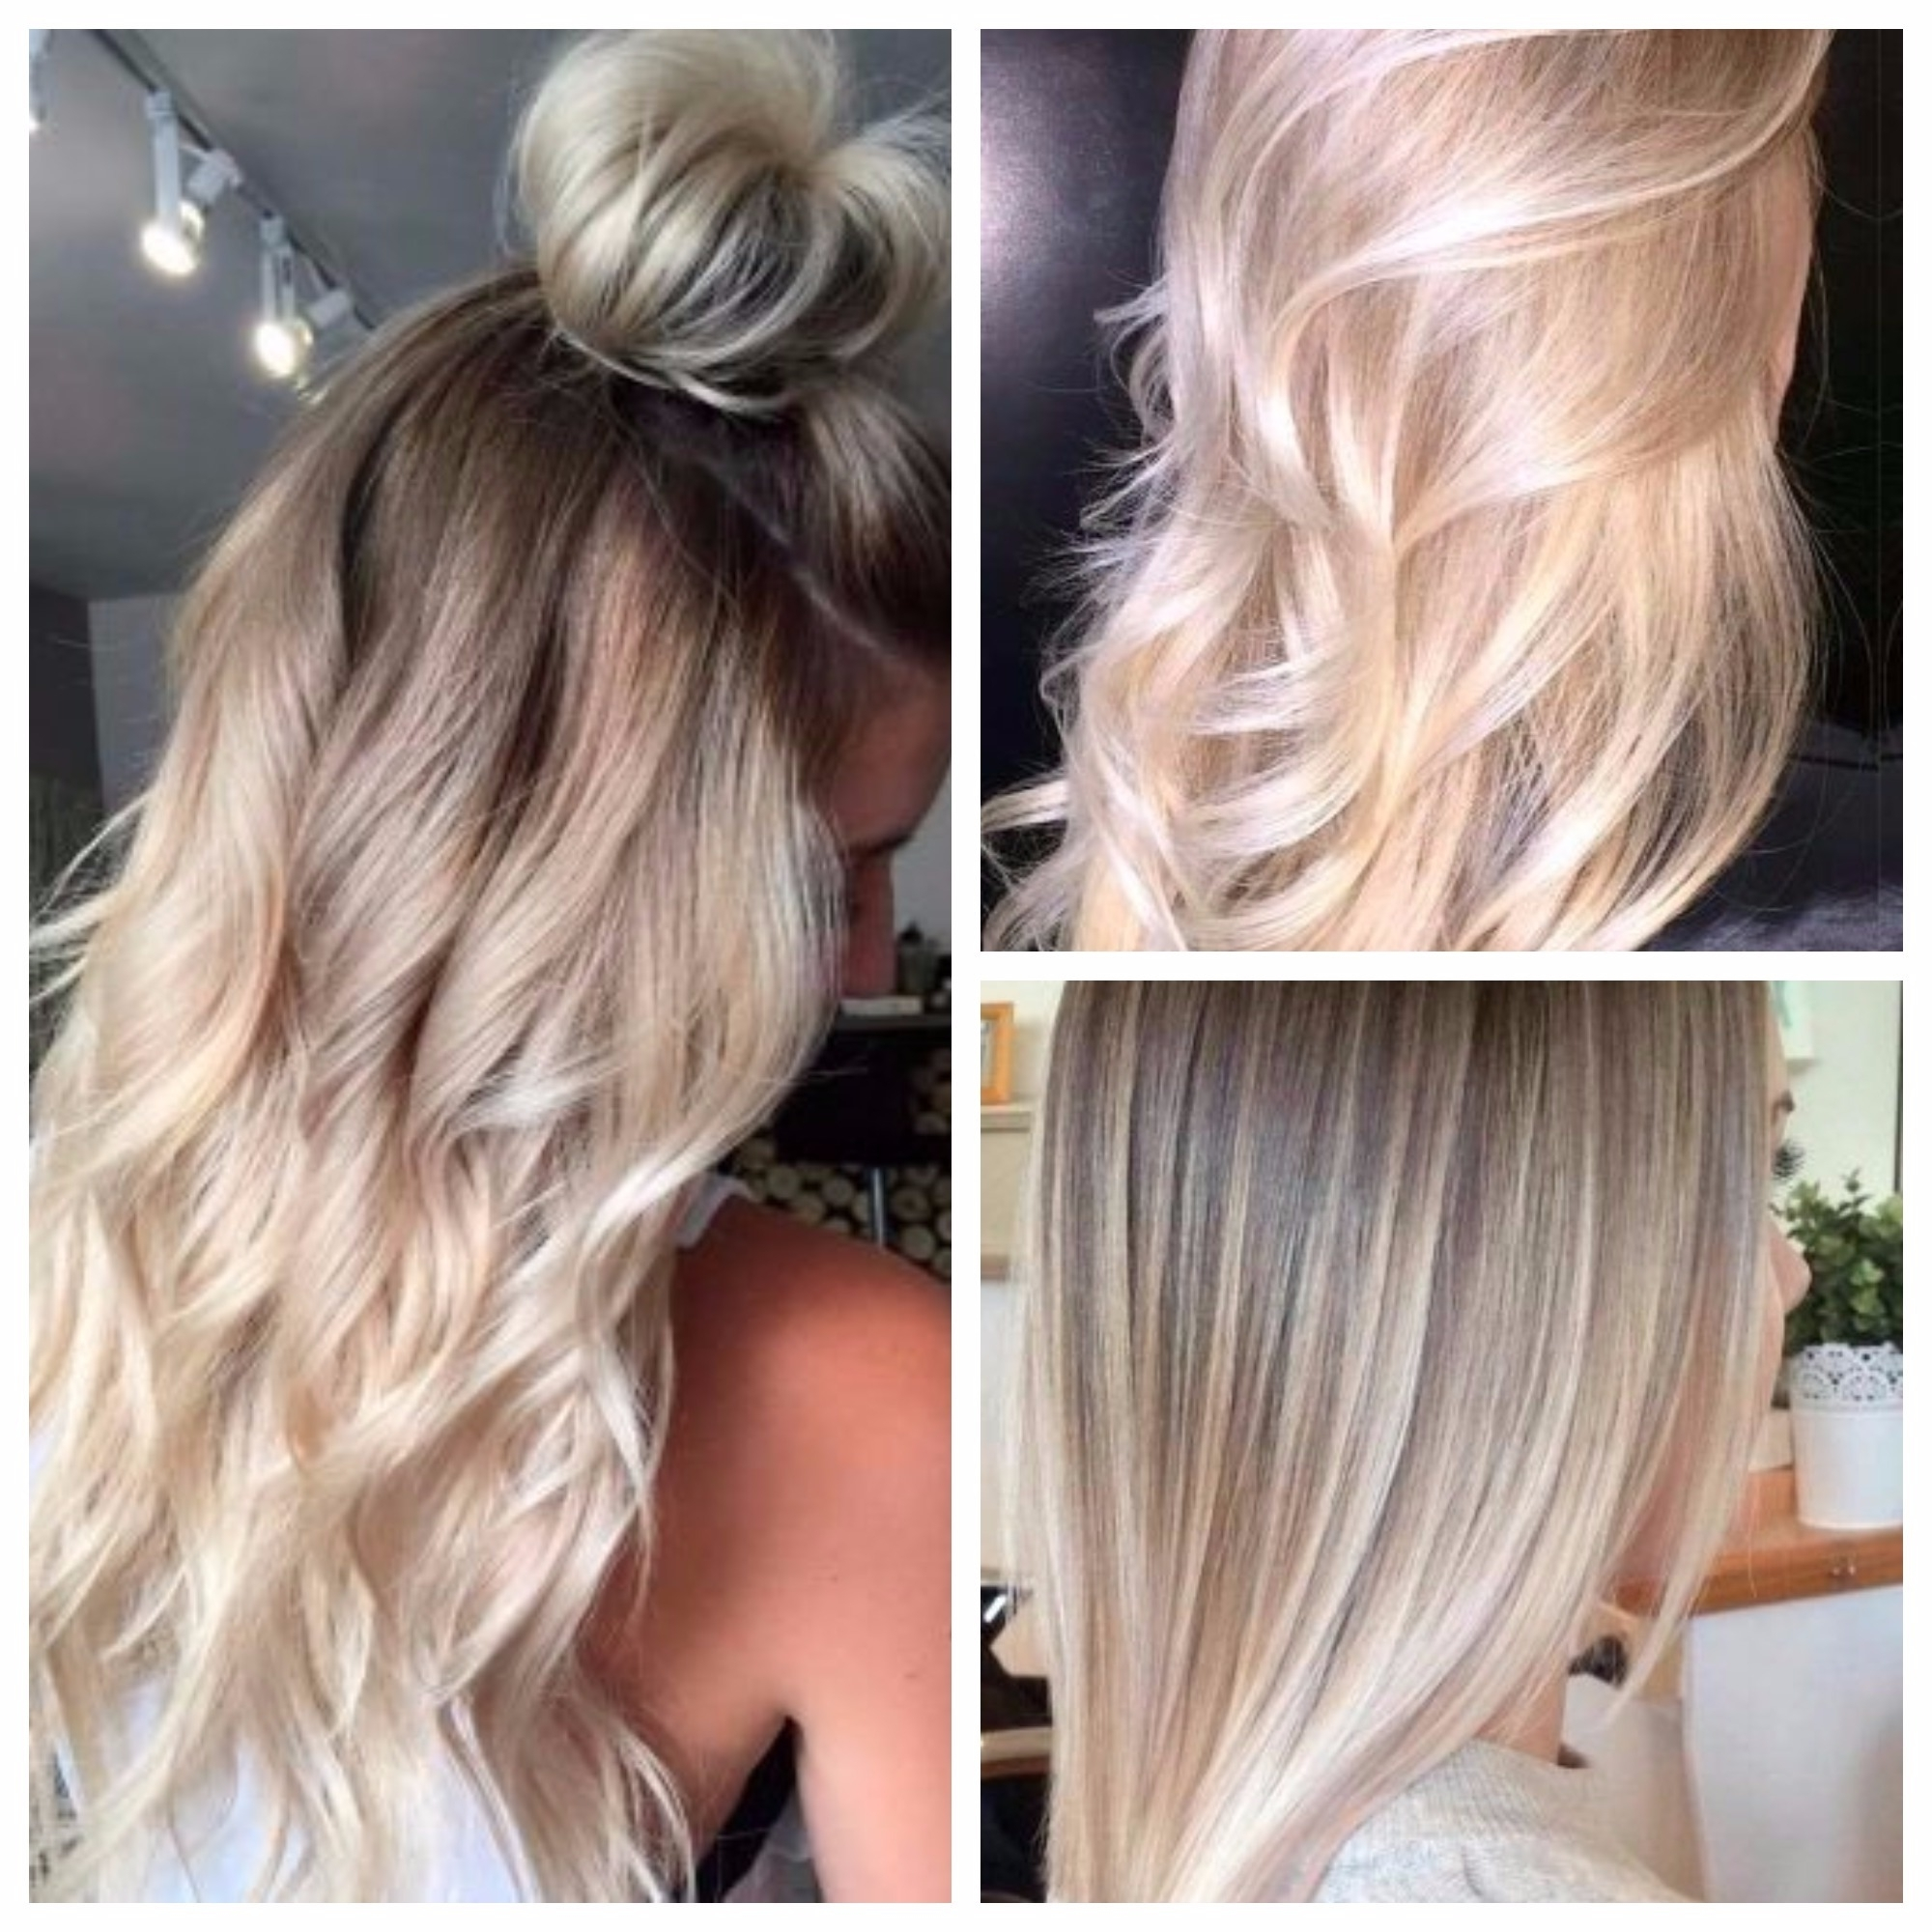 Fashionable Dark Blonde Hairstyles With Icy Streaks For Blonde Ombre Hair Colors You Should Try – Hair World Magazine (View 8 of 20)